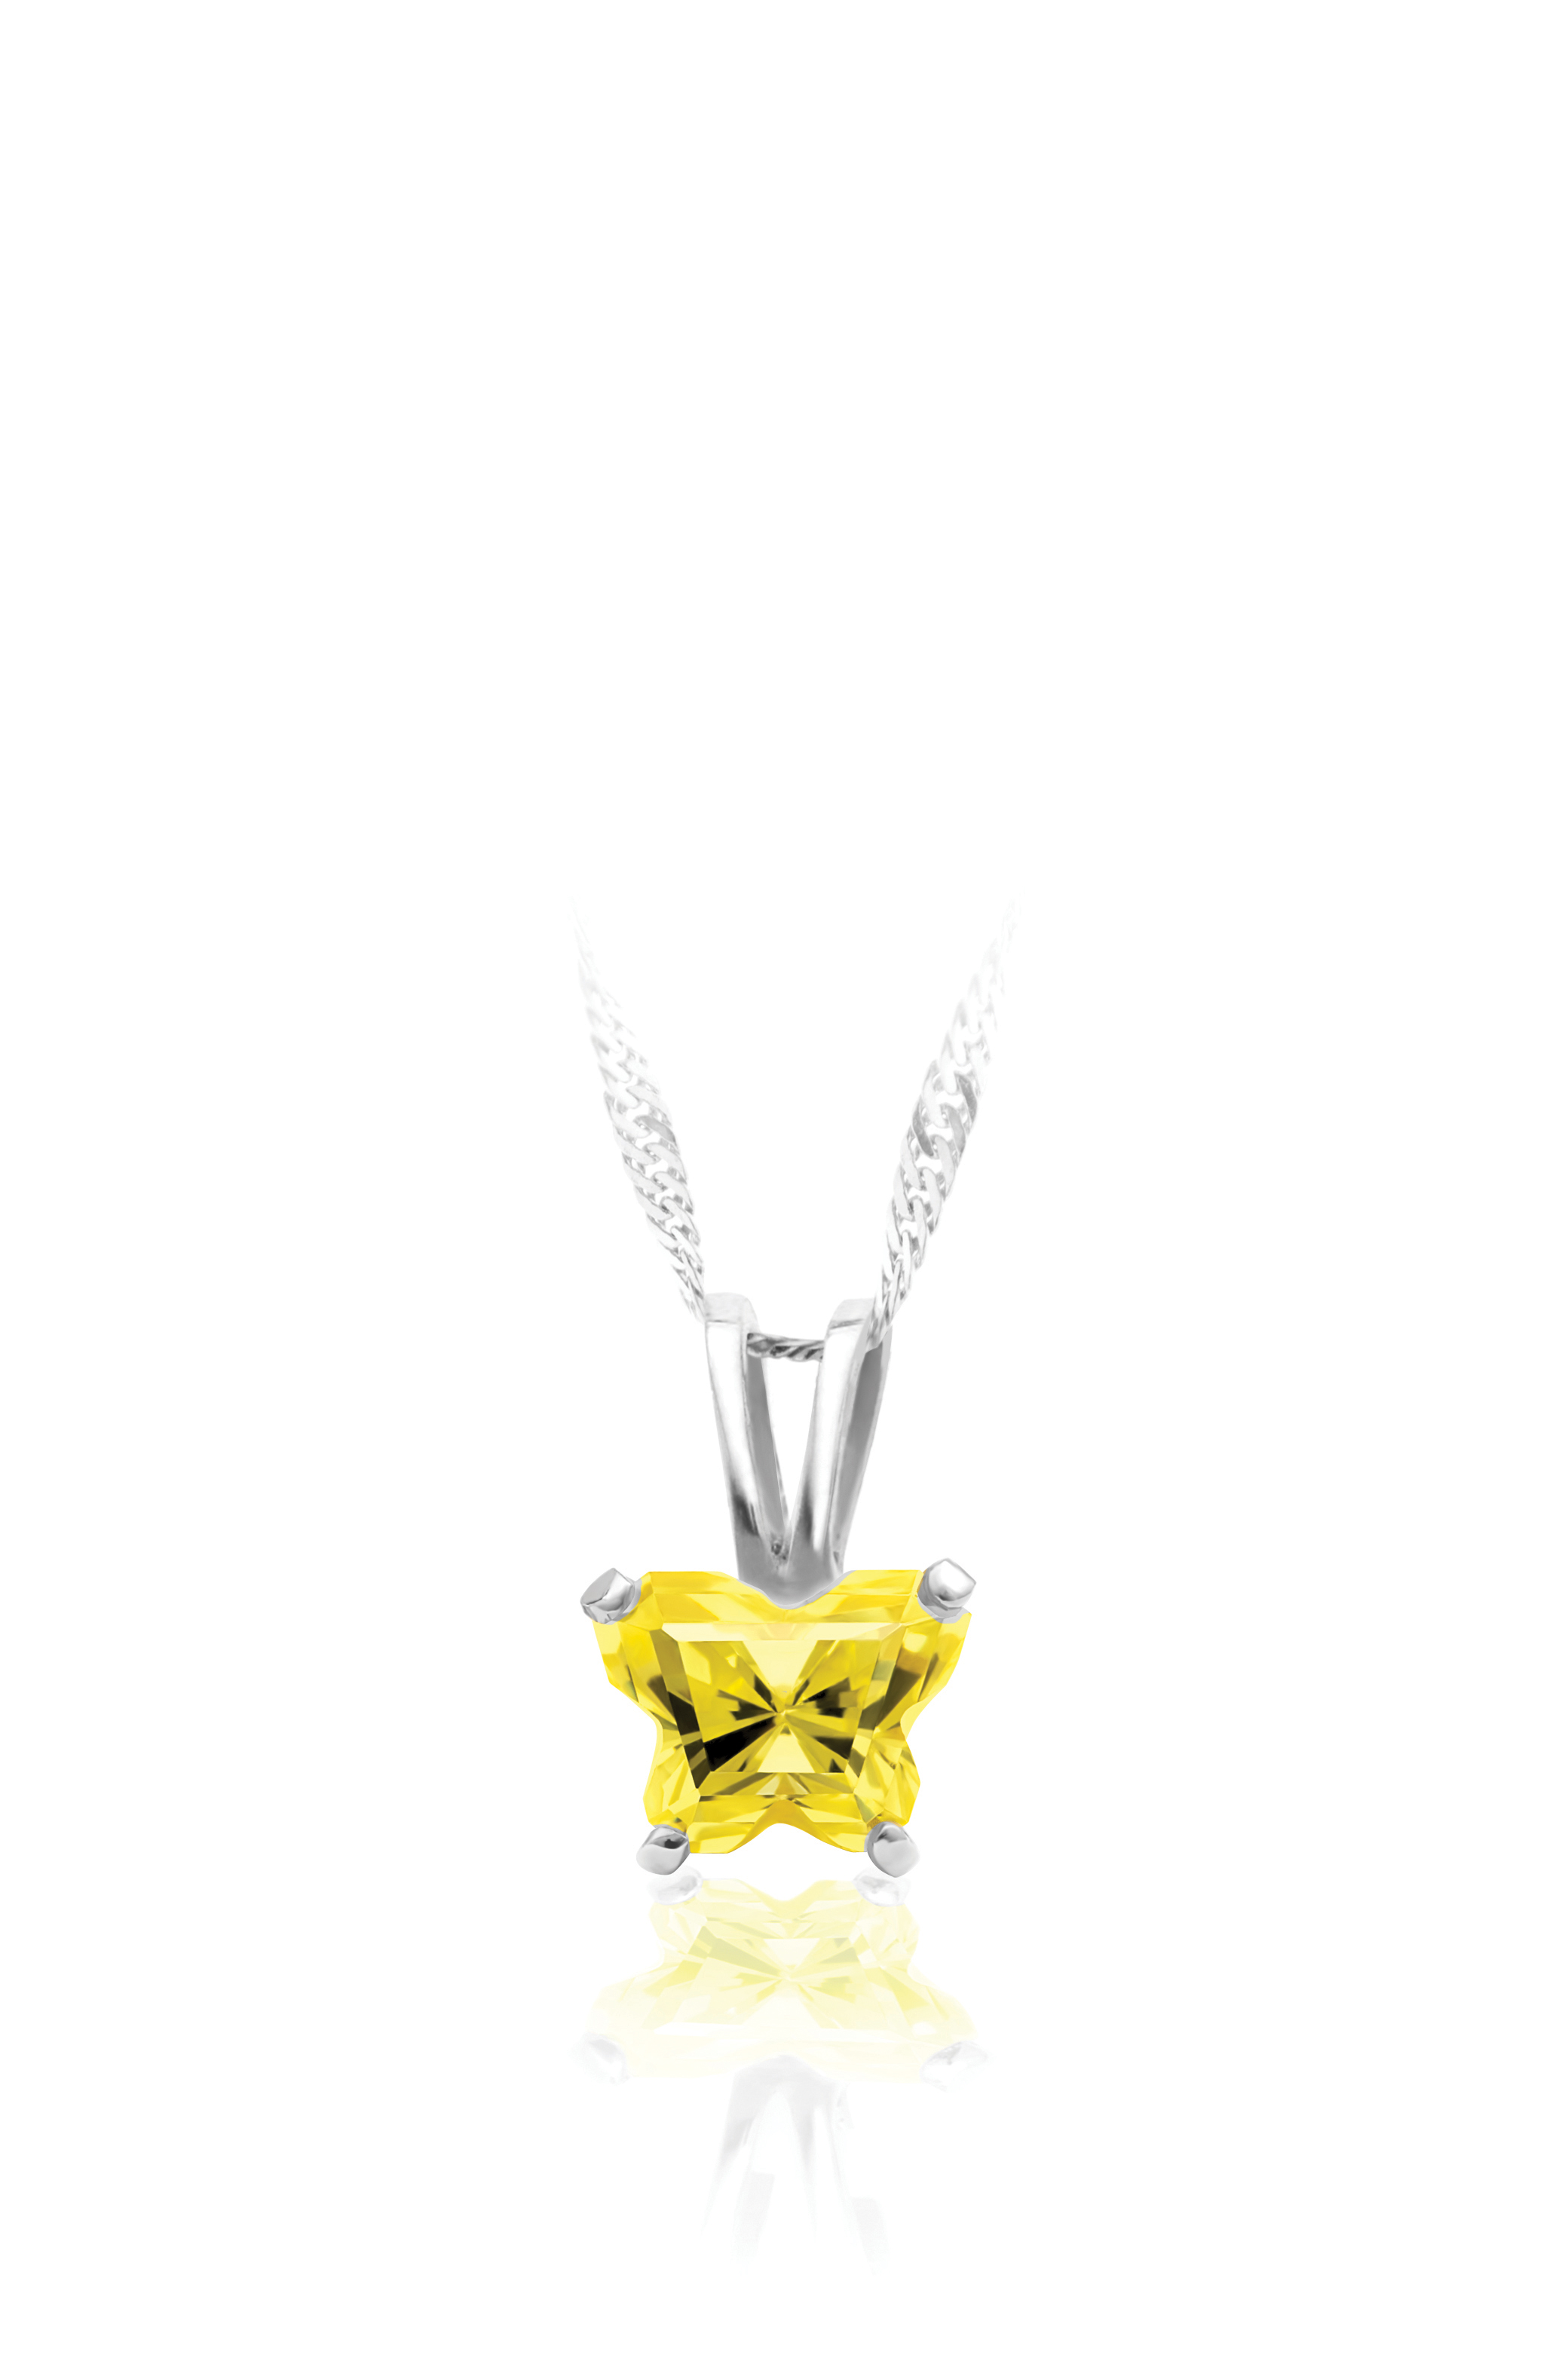 pendant for babies in sterling silver with yellow cubic zirconia (month of November) - Chain included